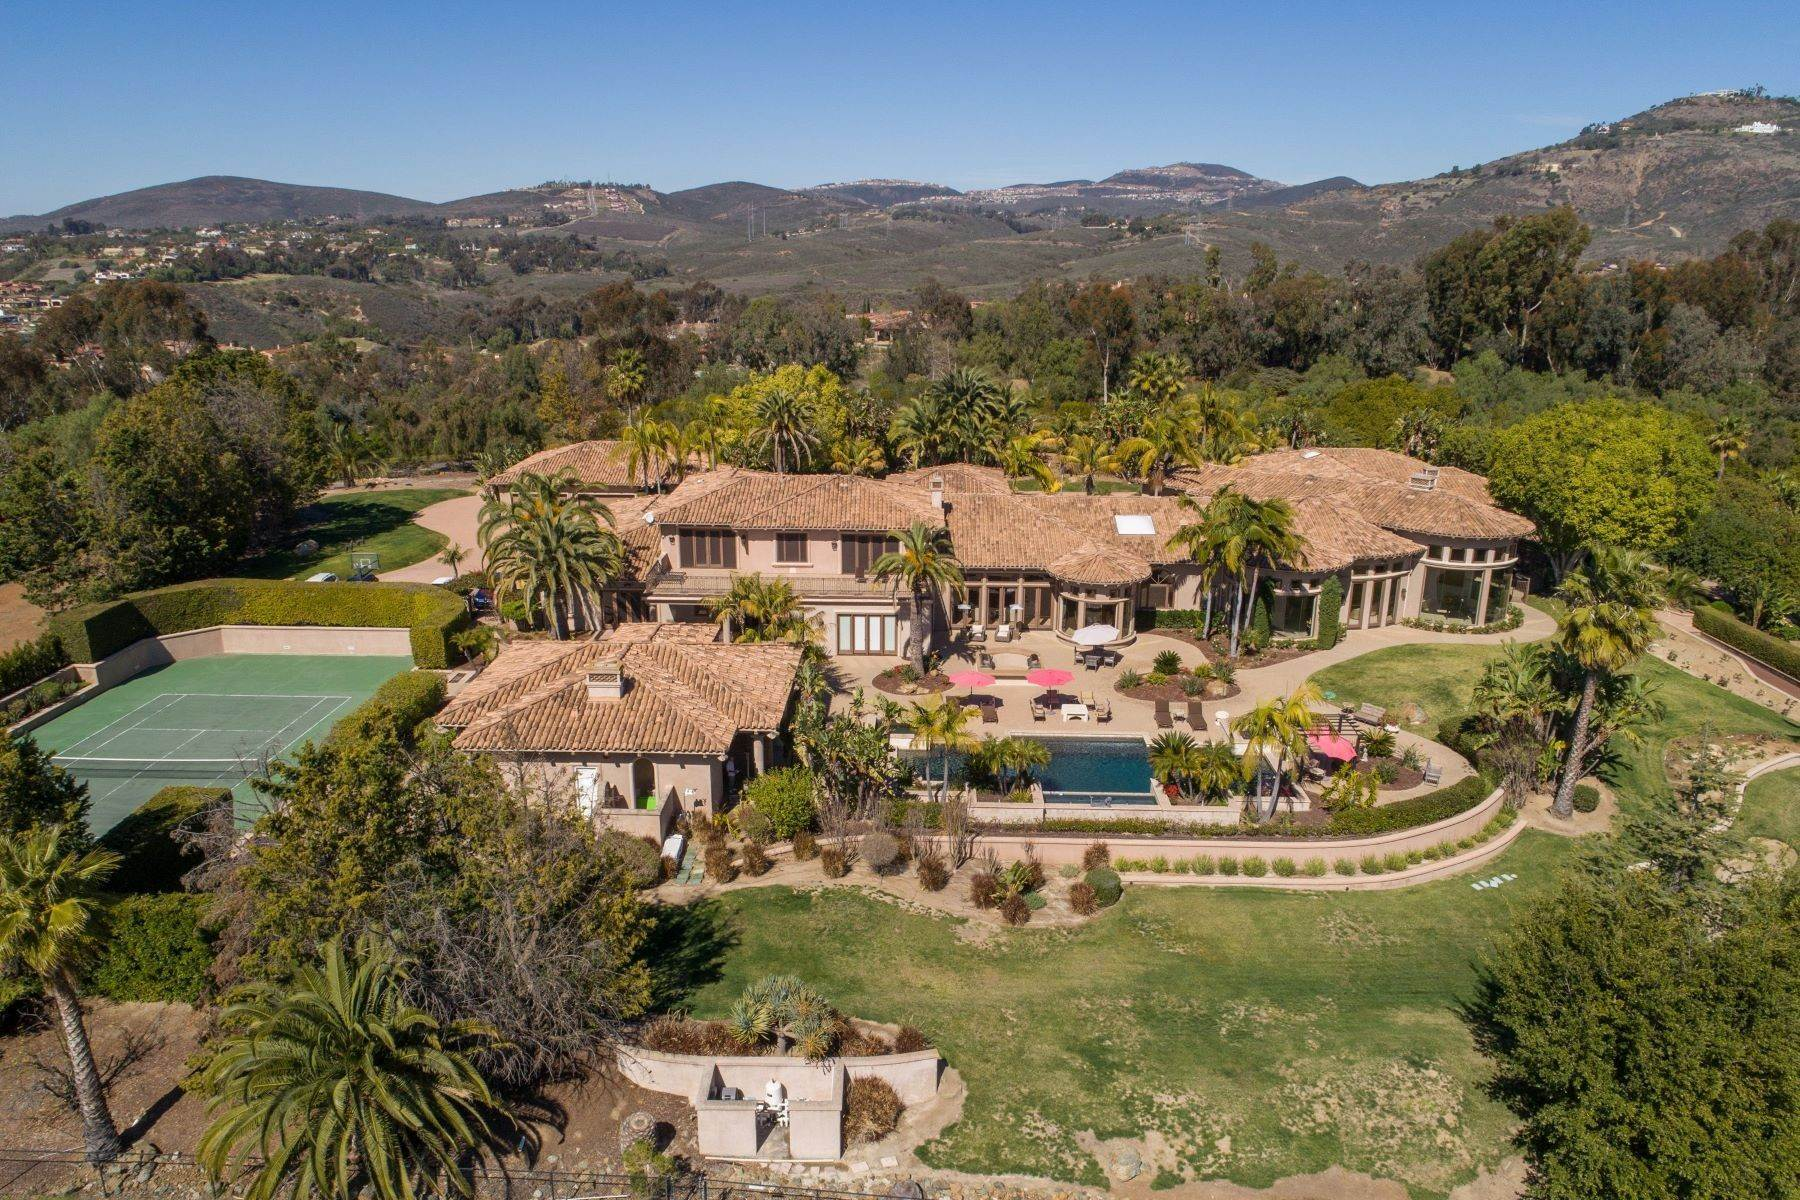 Single Family Homes for Sale at 6682 Las Arboledas, Rancho Santa Fe, CA 92067 6682 Las Arboledas Rancho Santa Fe, California 92067 United States